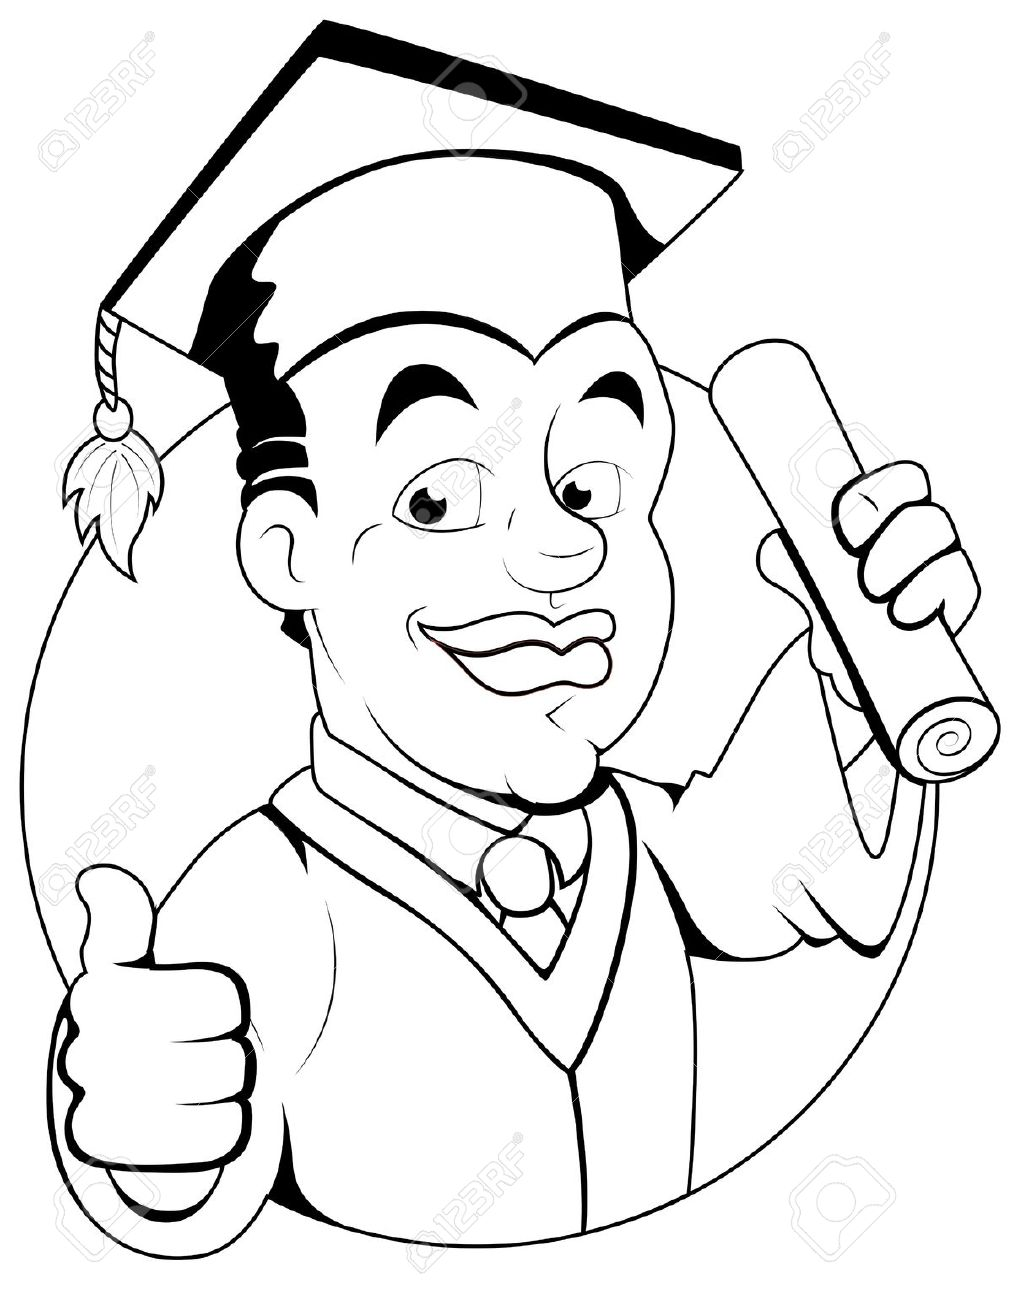 graduation drawings Clip art graduation black and white jpeg